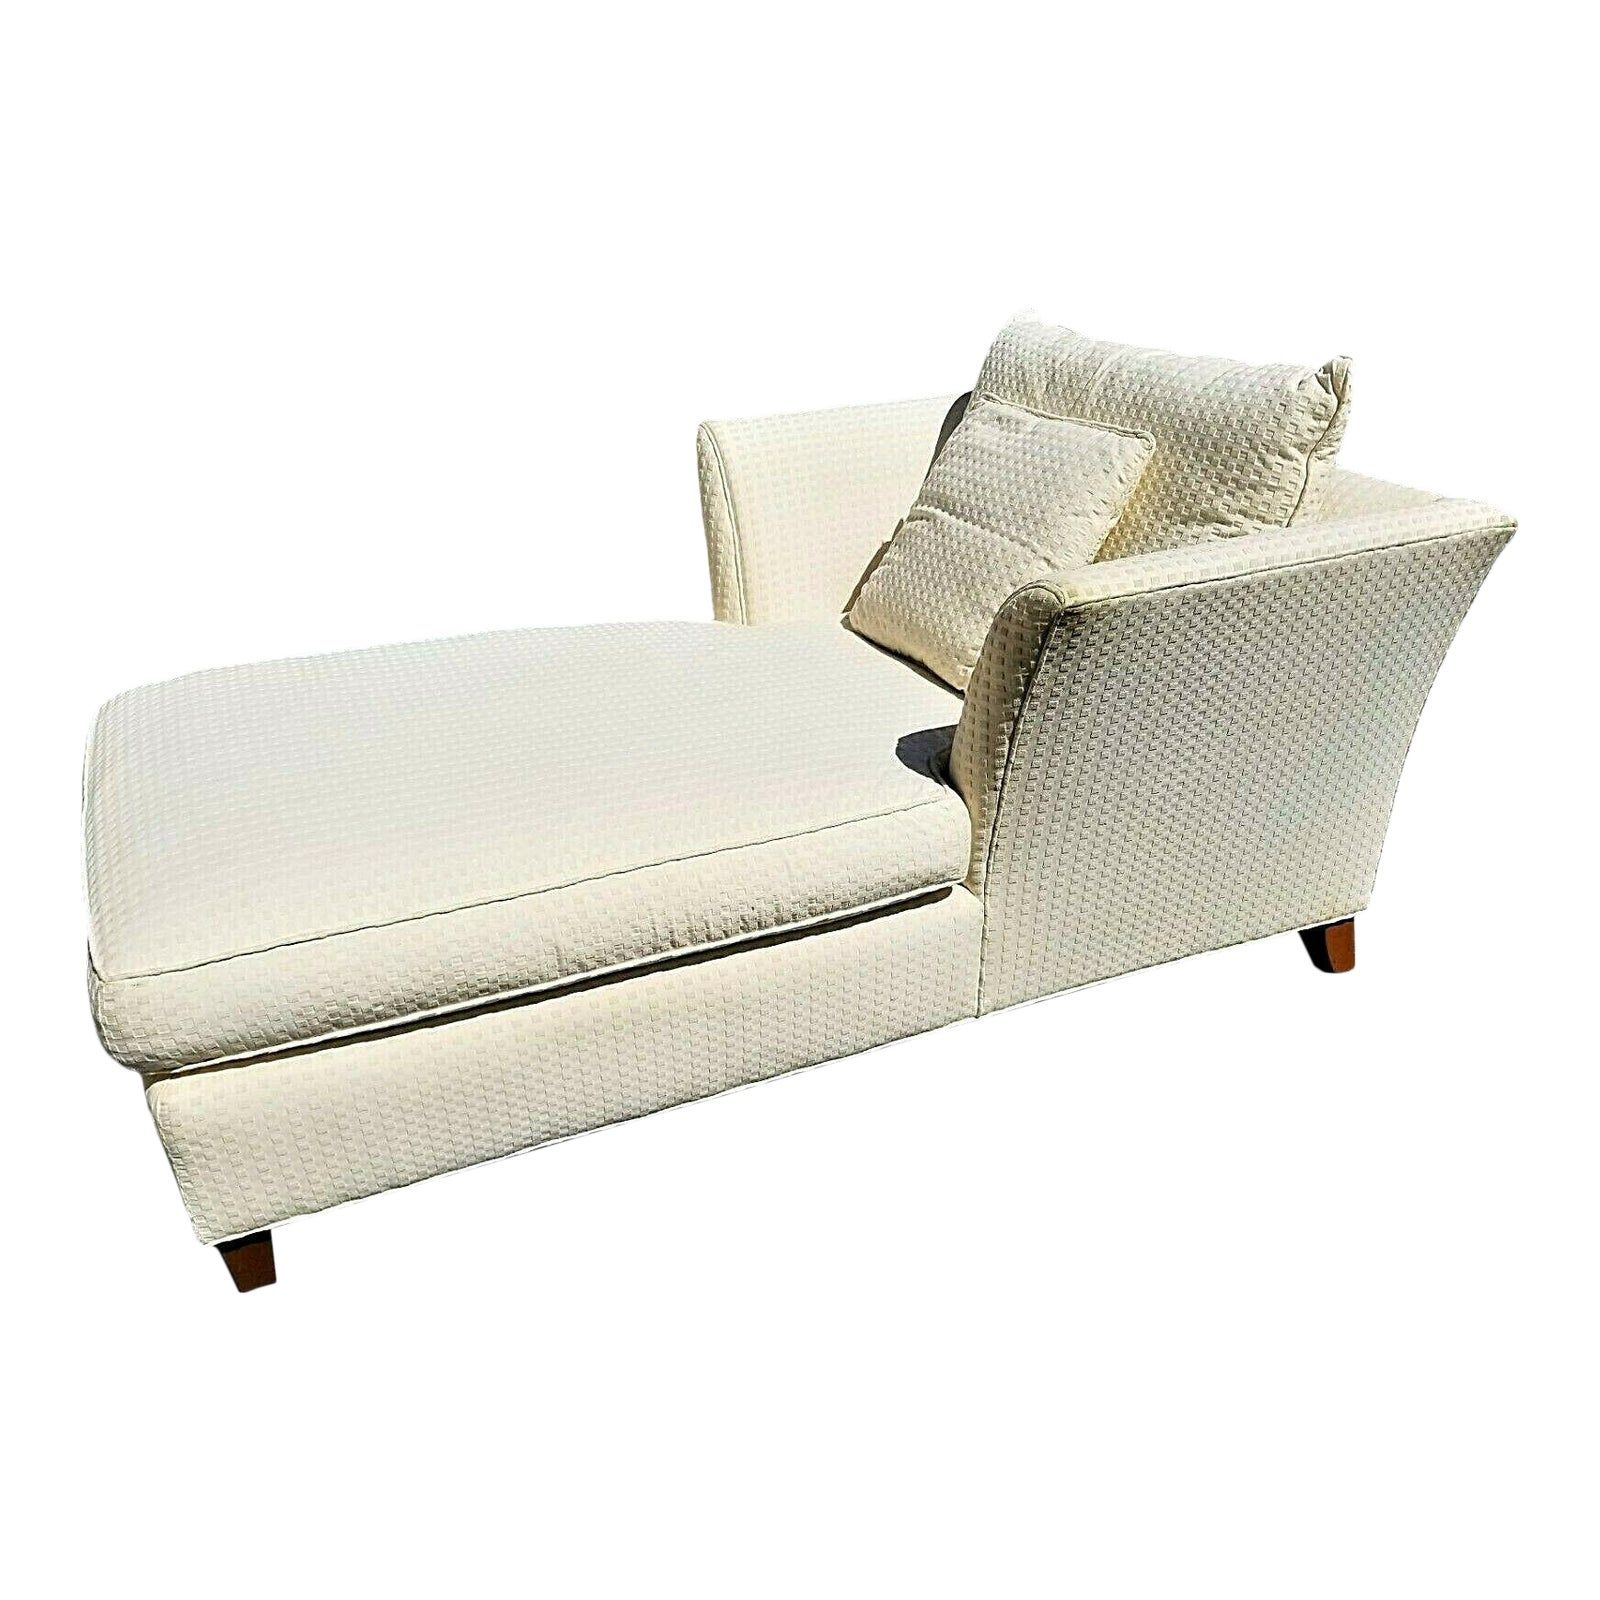 Lexington Home Oversized Beige Ivory Chaise Lounge Chairish In 2020 Lexington Home Lexington Furniture Chaise Lounge